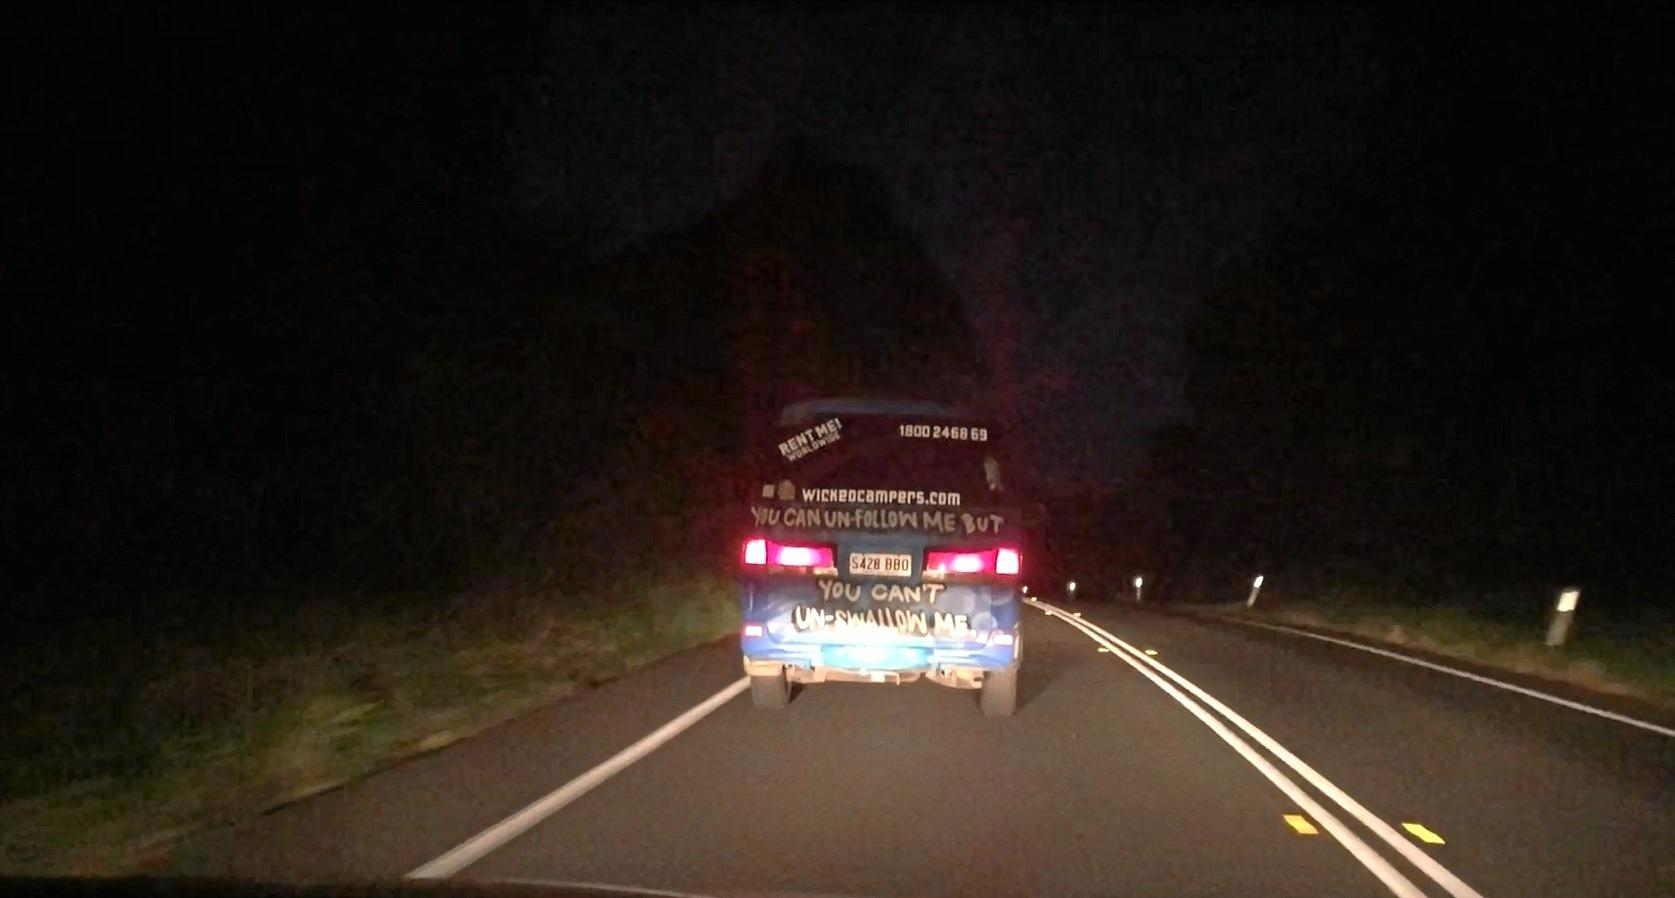 Another Wicked Camper with an offensive slogan was spotted driving on the Coast Road into Byron Bay on Tuesday night.